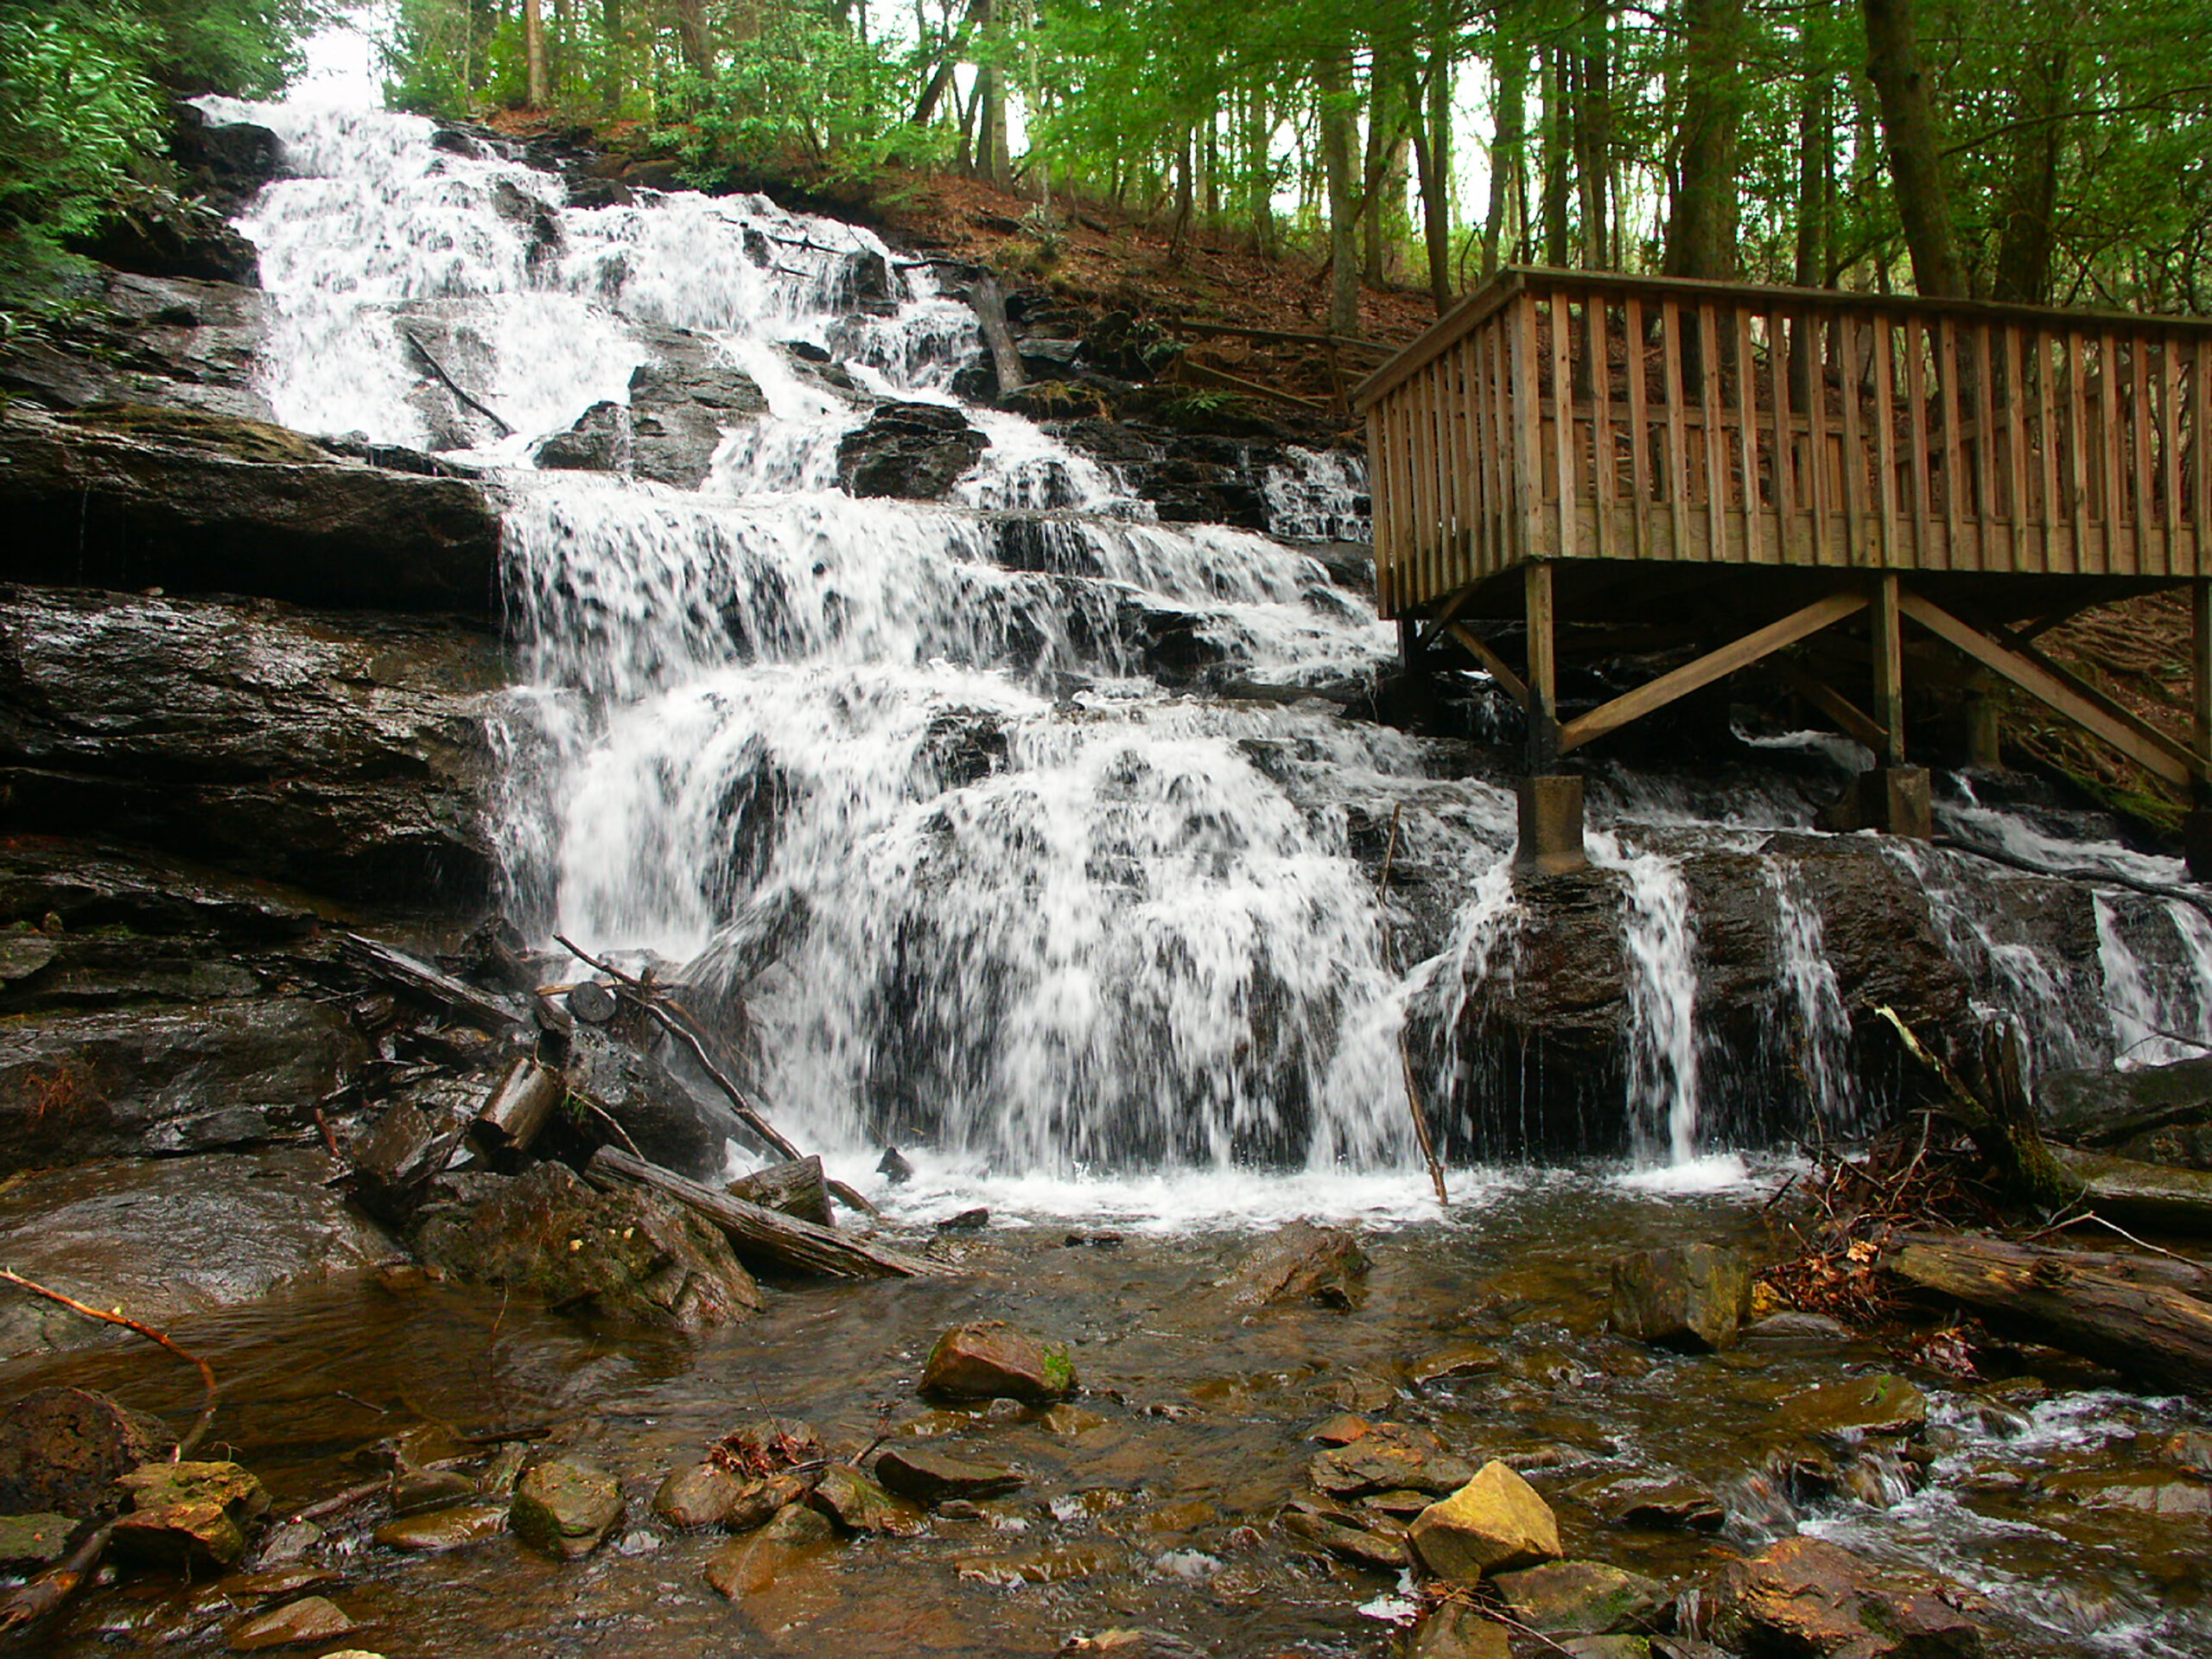 Photo of a beautiful cascading waterfall at Vogel State Park in Georgia.